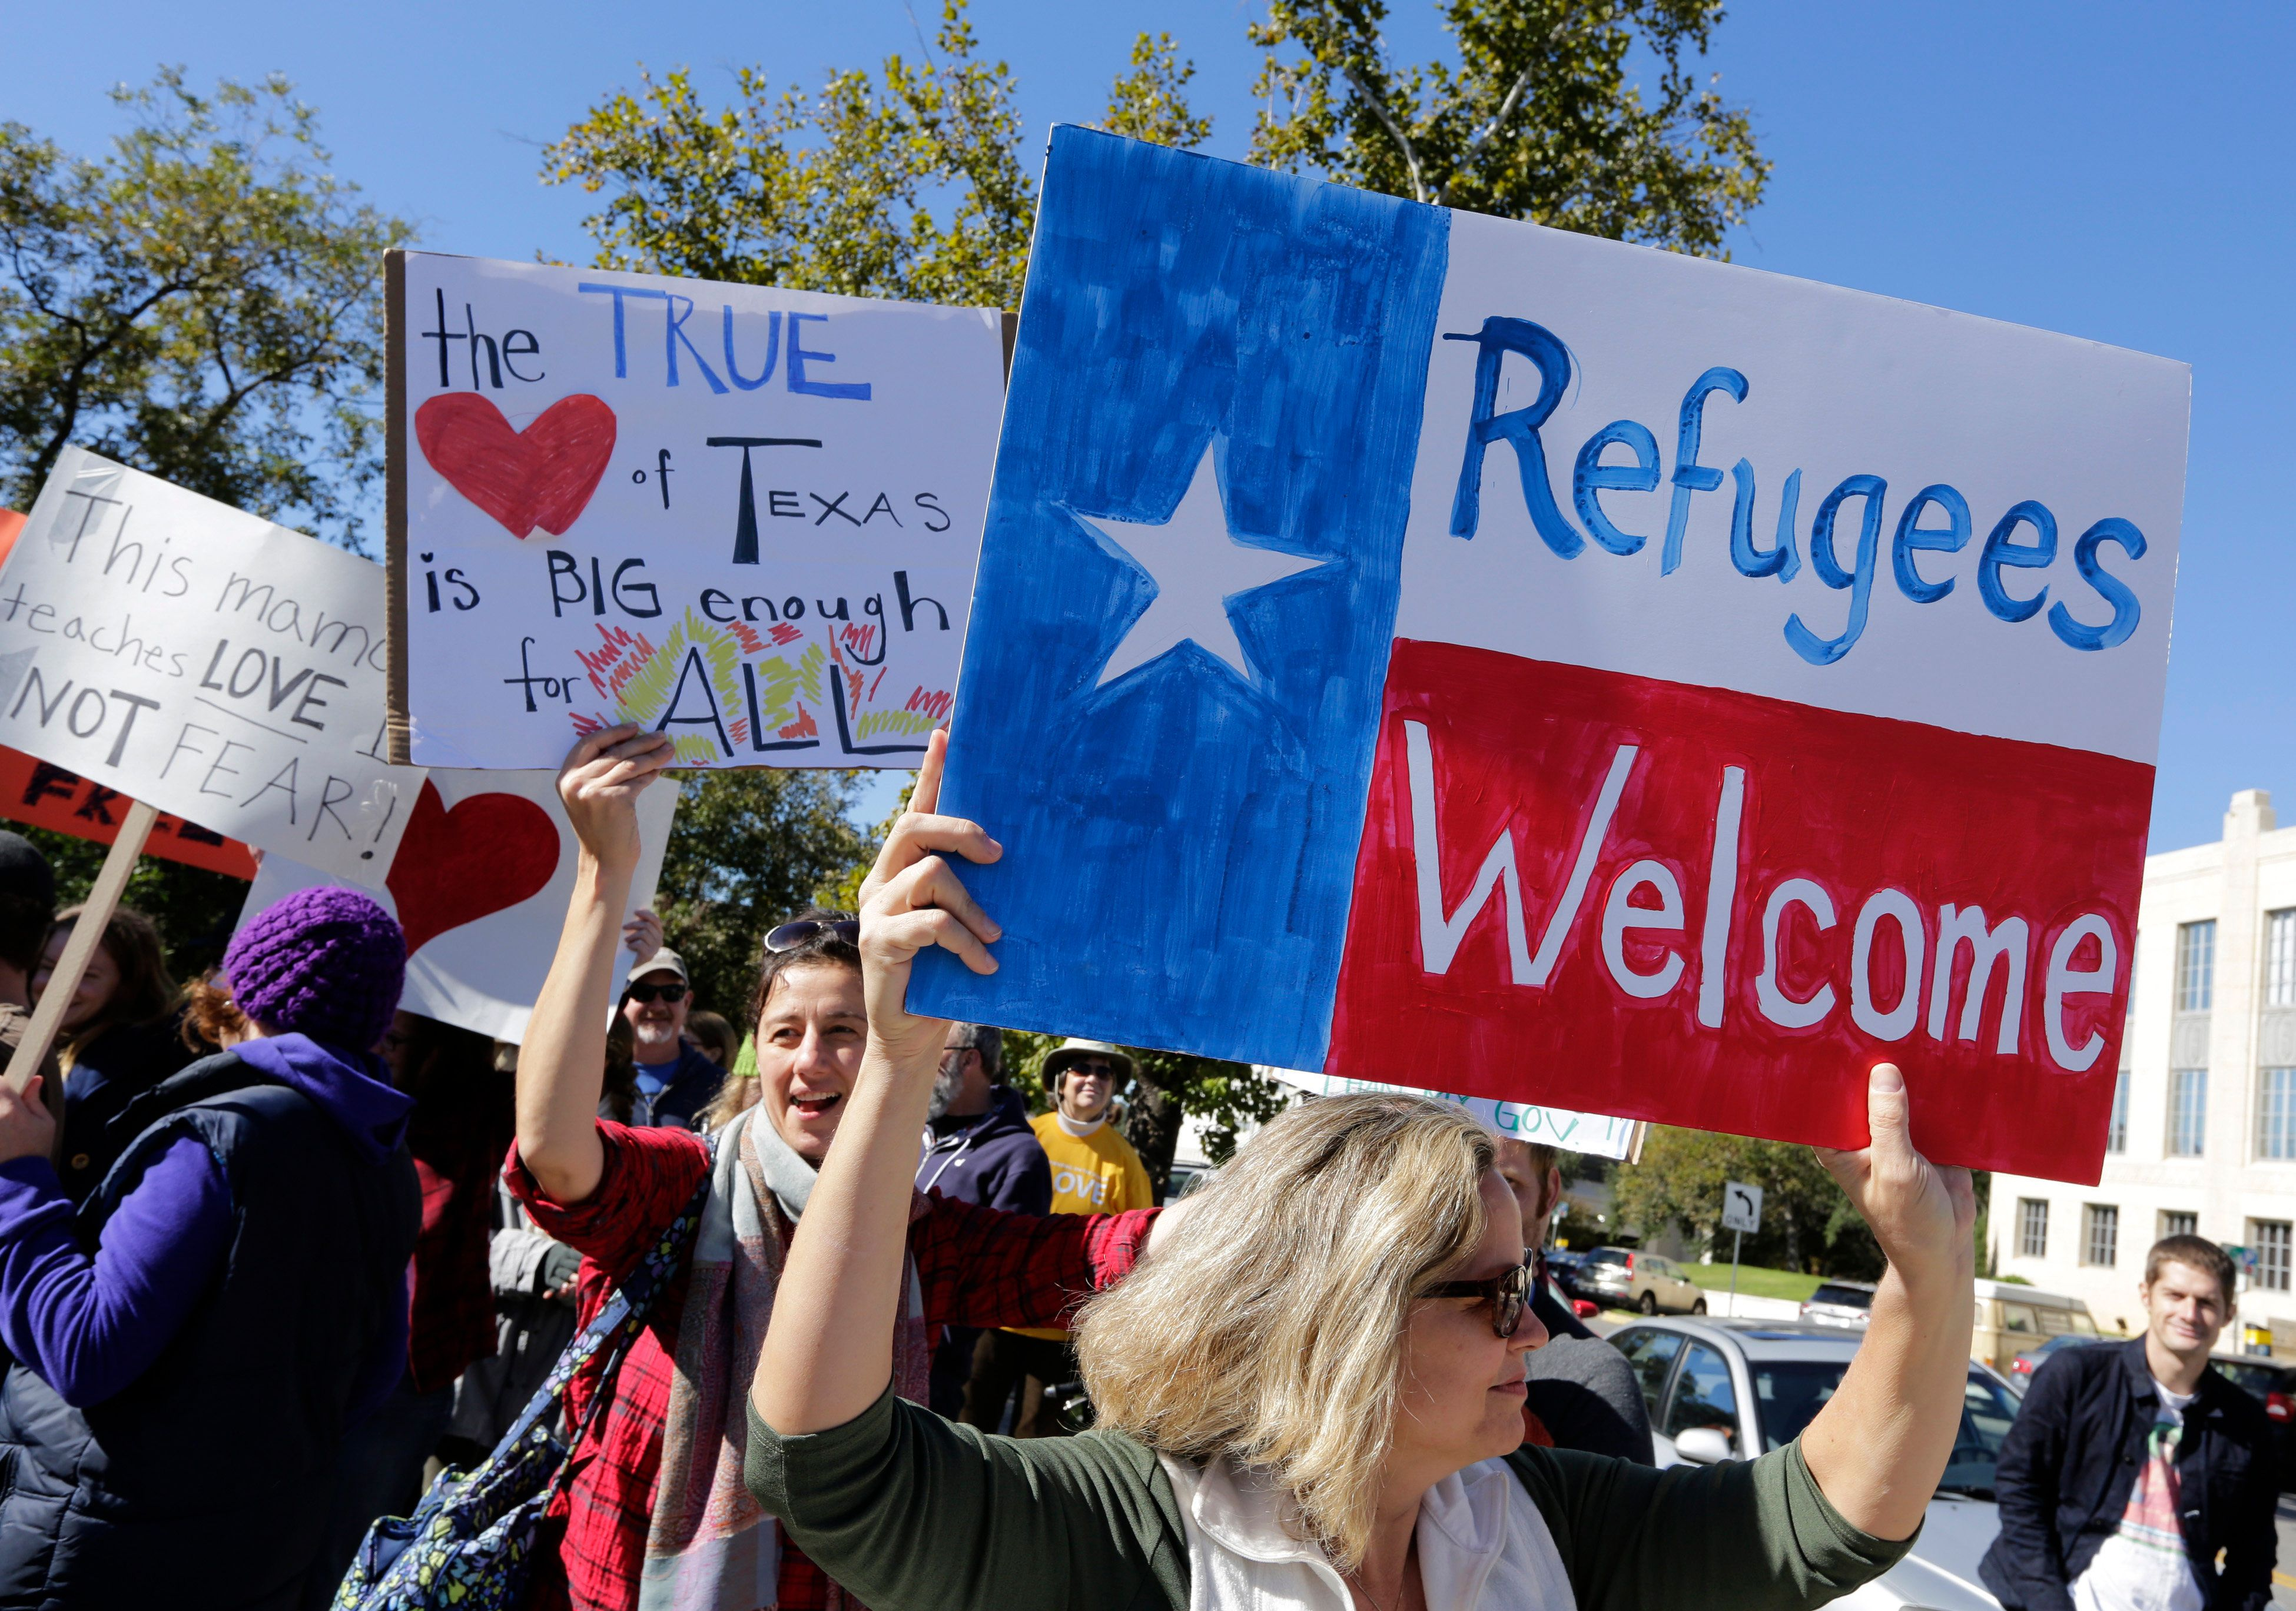 AUSTIN, TX -  NOVEMBER 22: Members of The Syrian People Solidarity Group protest on November 22, 2015 in Austin, Texas. The group was protesting Texas governor Greg Abbott's refusal to allow Syrian refugees in the state. (Photo by Erich Schlegel/Getty Images)